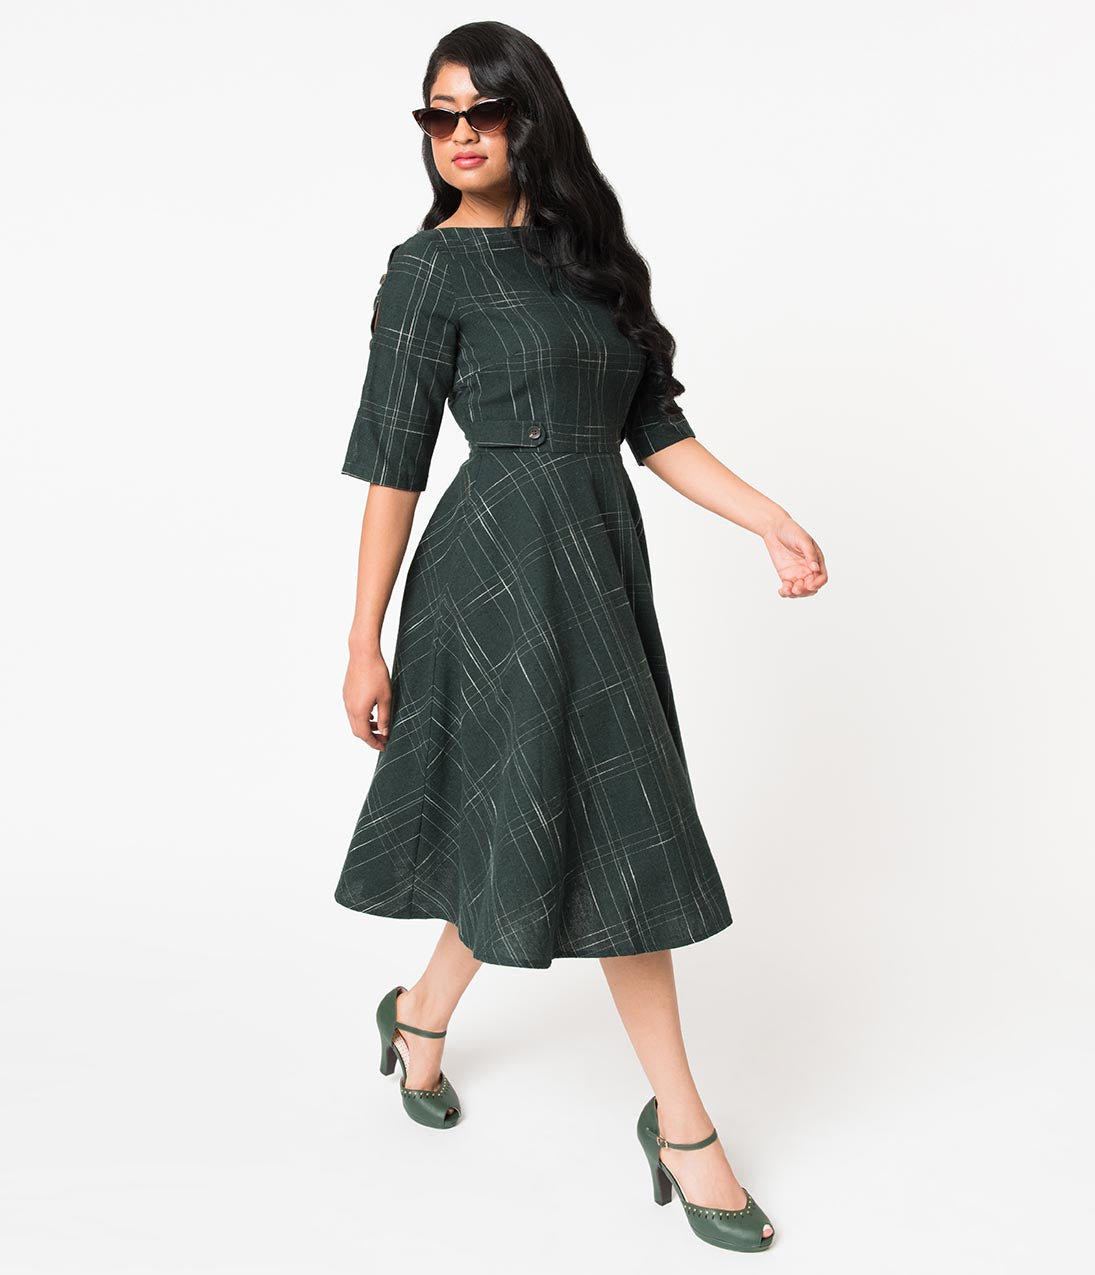 What Did Women Wear in the 1950s? 1950s Fashion Guide Banned 1940S Dark Green Plaid Brushed Cotton Gabrielle Swing Dress $78.00 AT vintagedancer.com